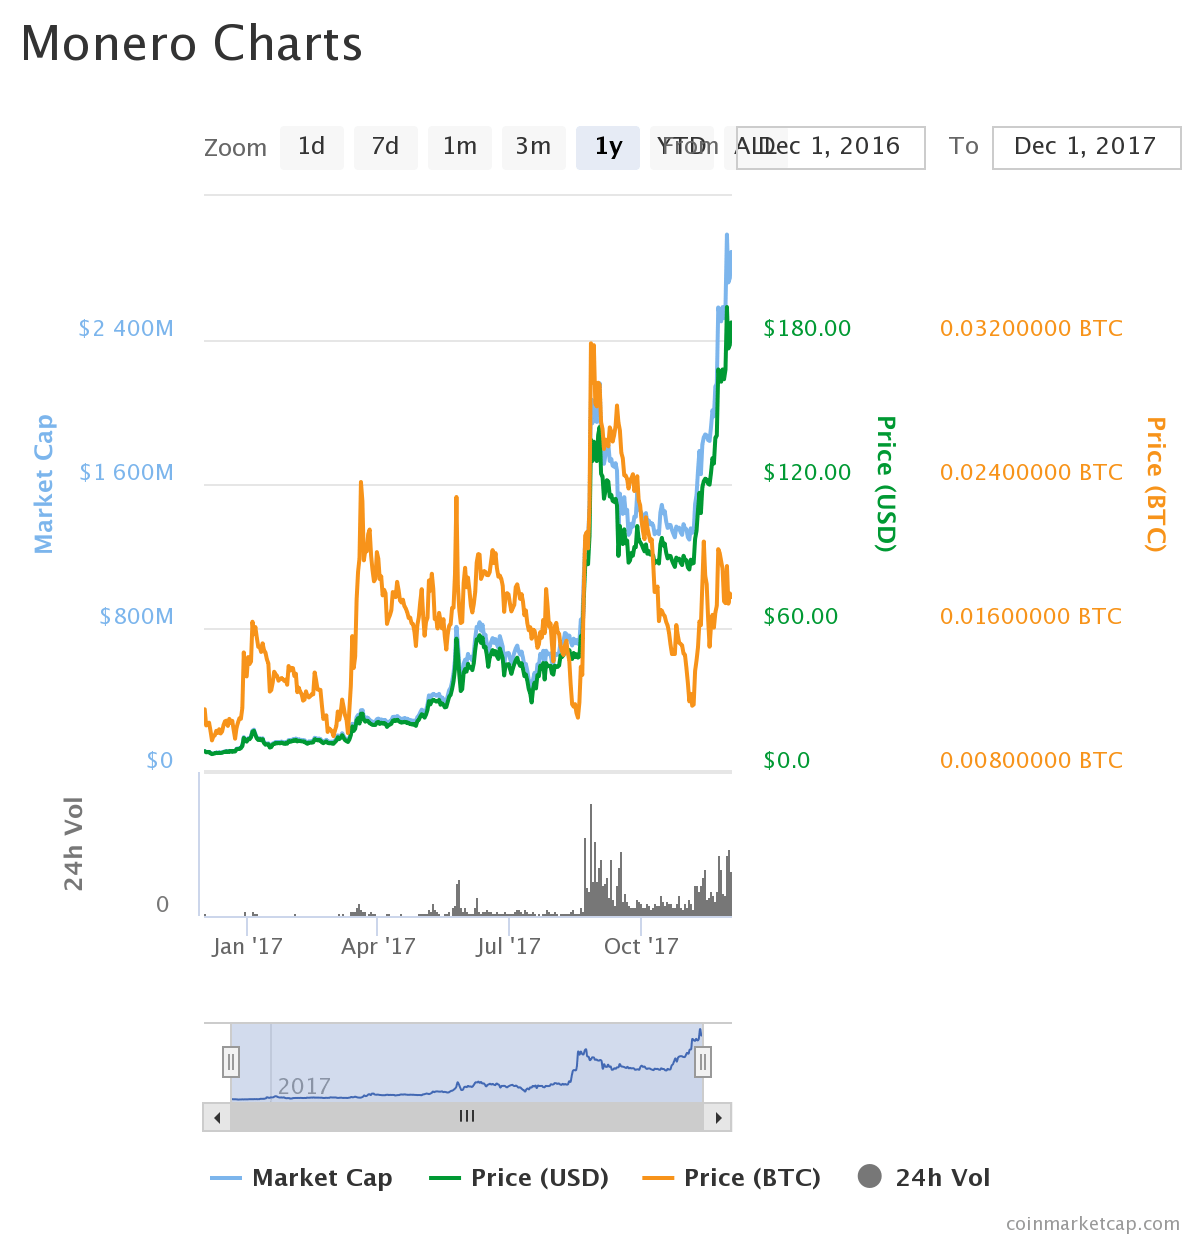 xmrchart - Monero (XMR): The New Face of Cryptocurrency